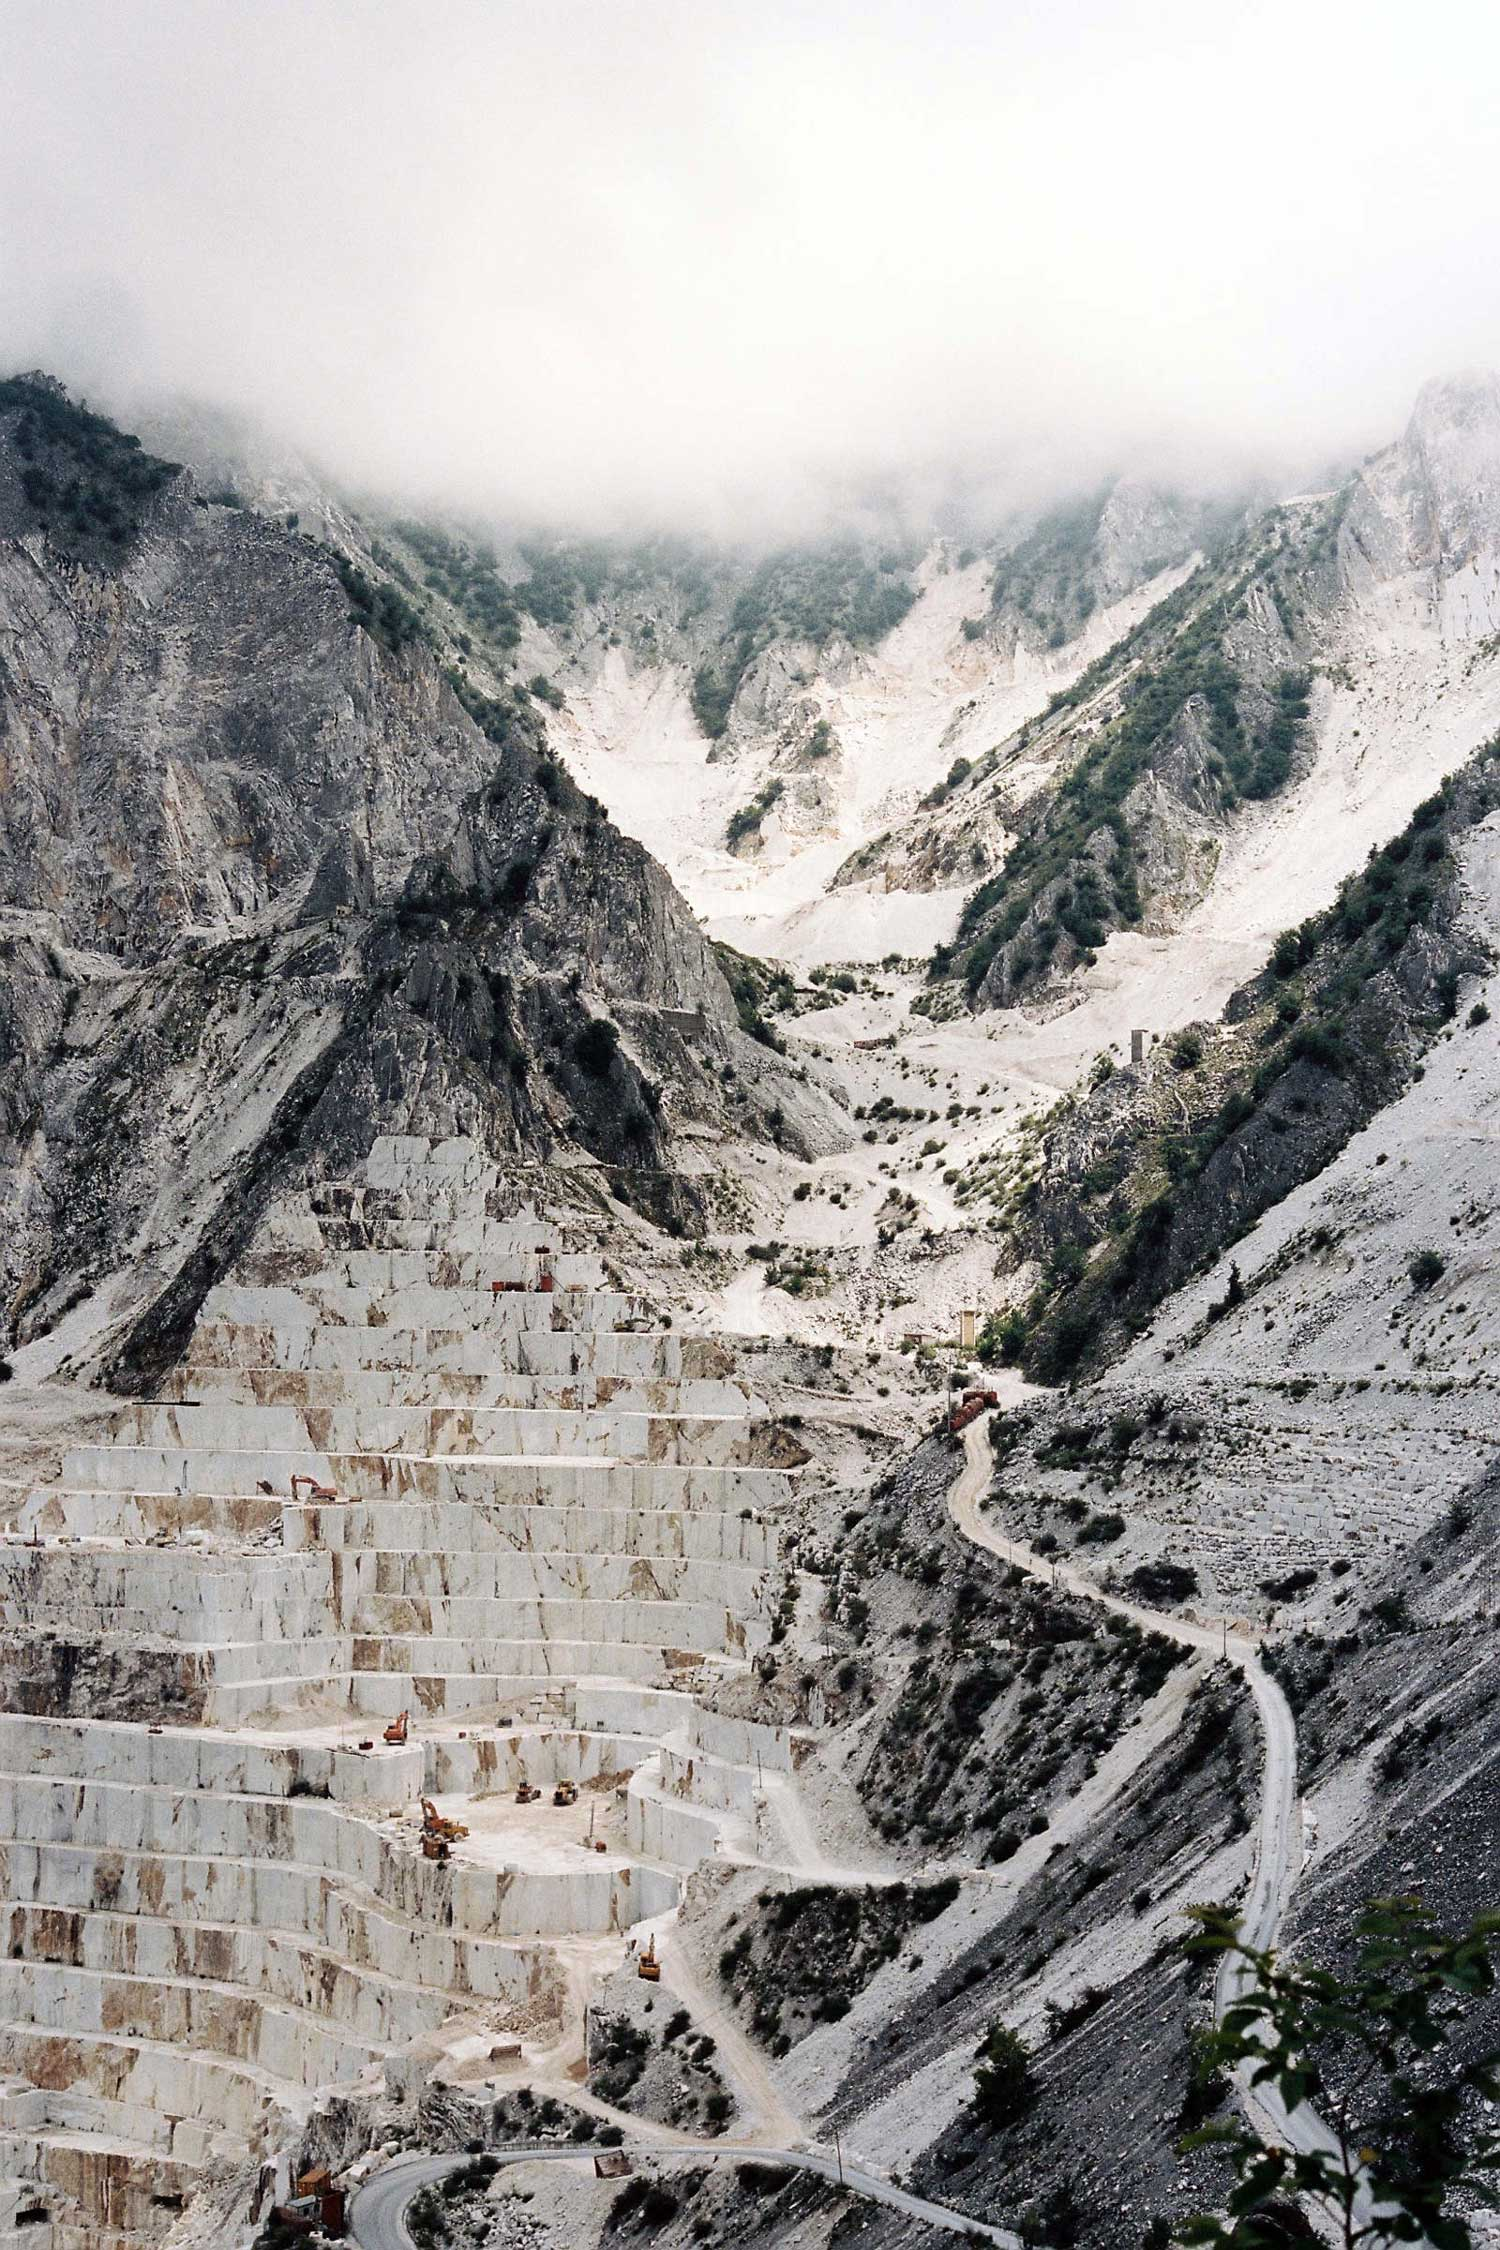 Deconstructed Quarry Landscapes by Virginie Khateeb | Yellowtrace